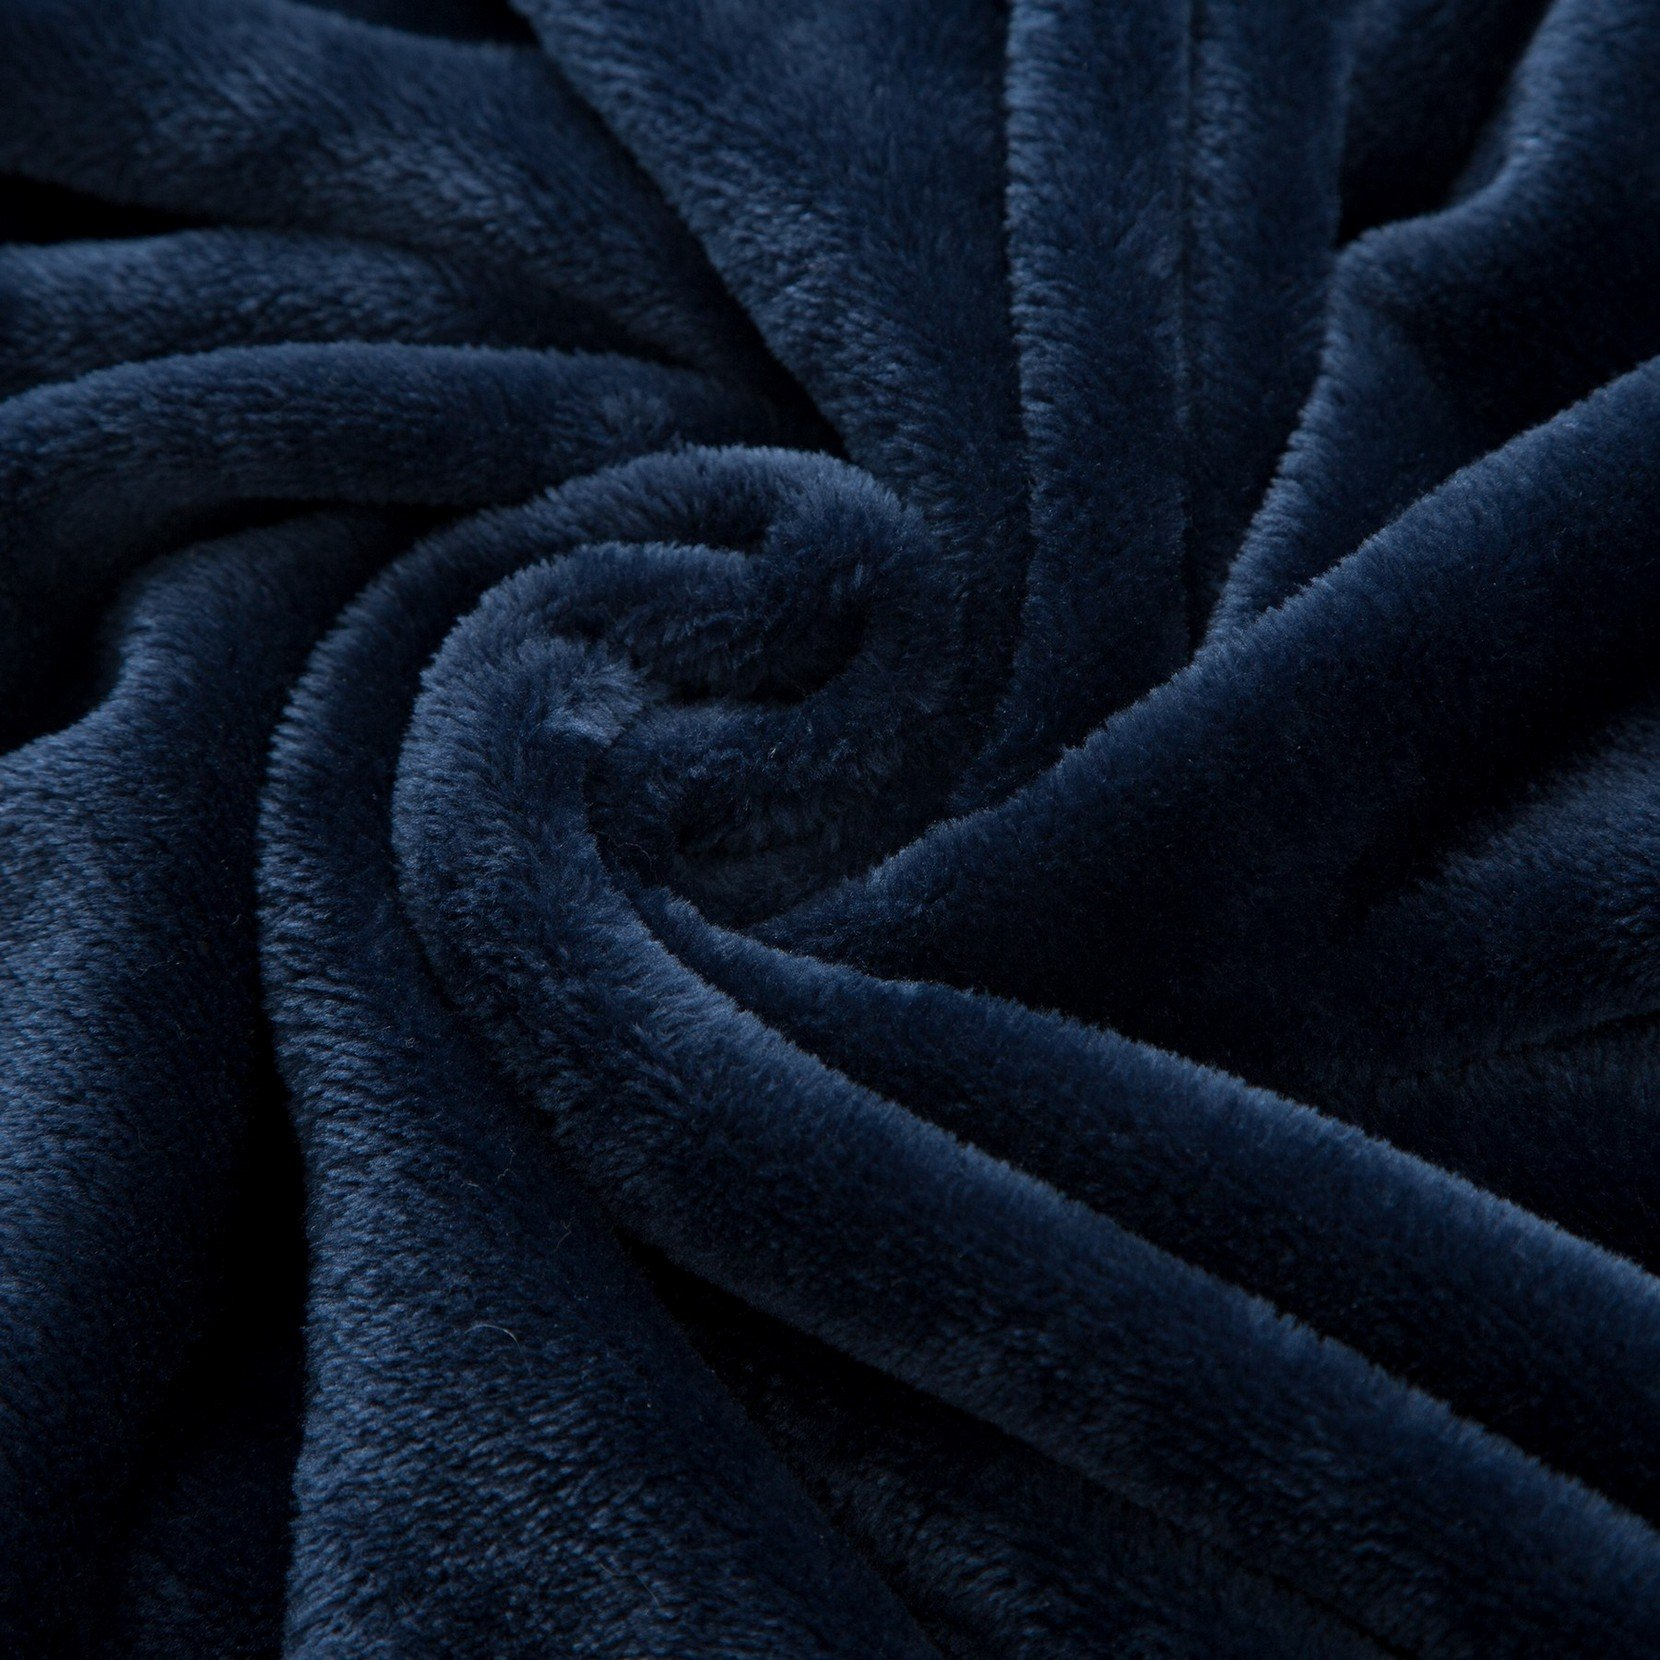 Moonen Flannel Throw Blanket Luxurious Throw Size Lightweight Plush Microfiber Fleece Comfy All Season Super Soft Cozy Blanket for Bed Couch and Gift Blankets (Navy Blue, 50x60 Inches)